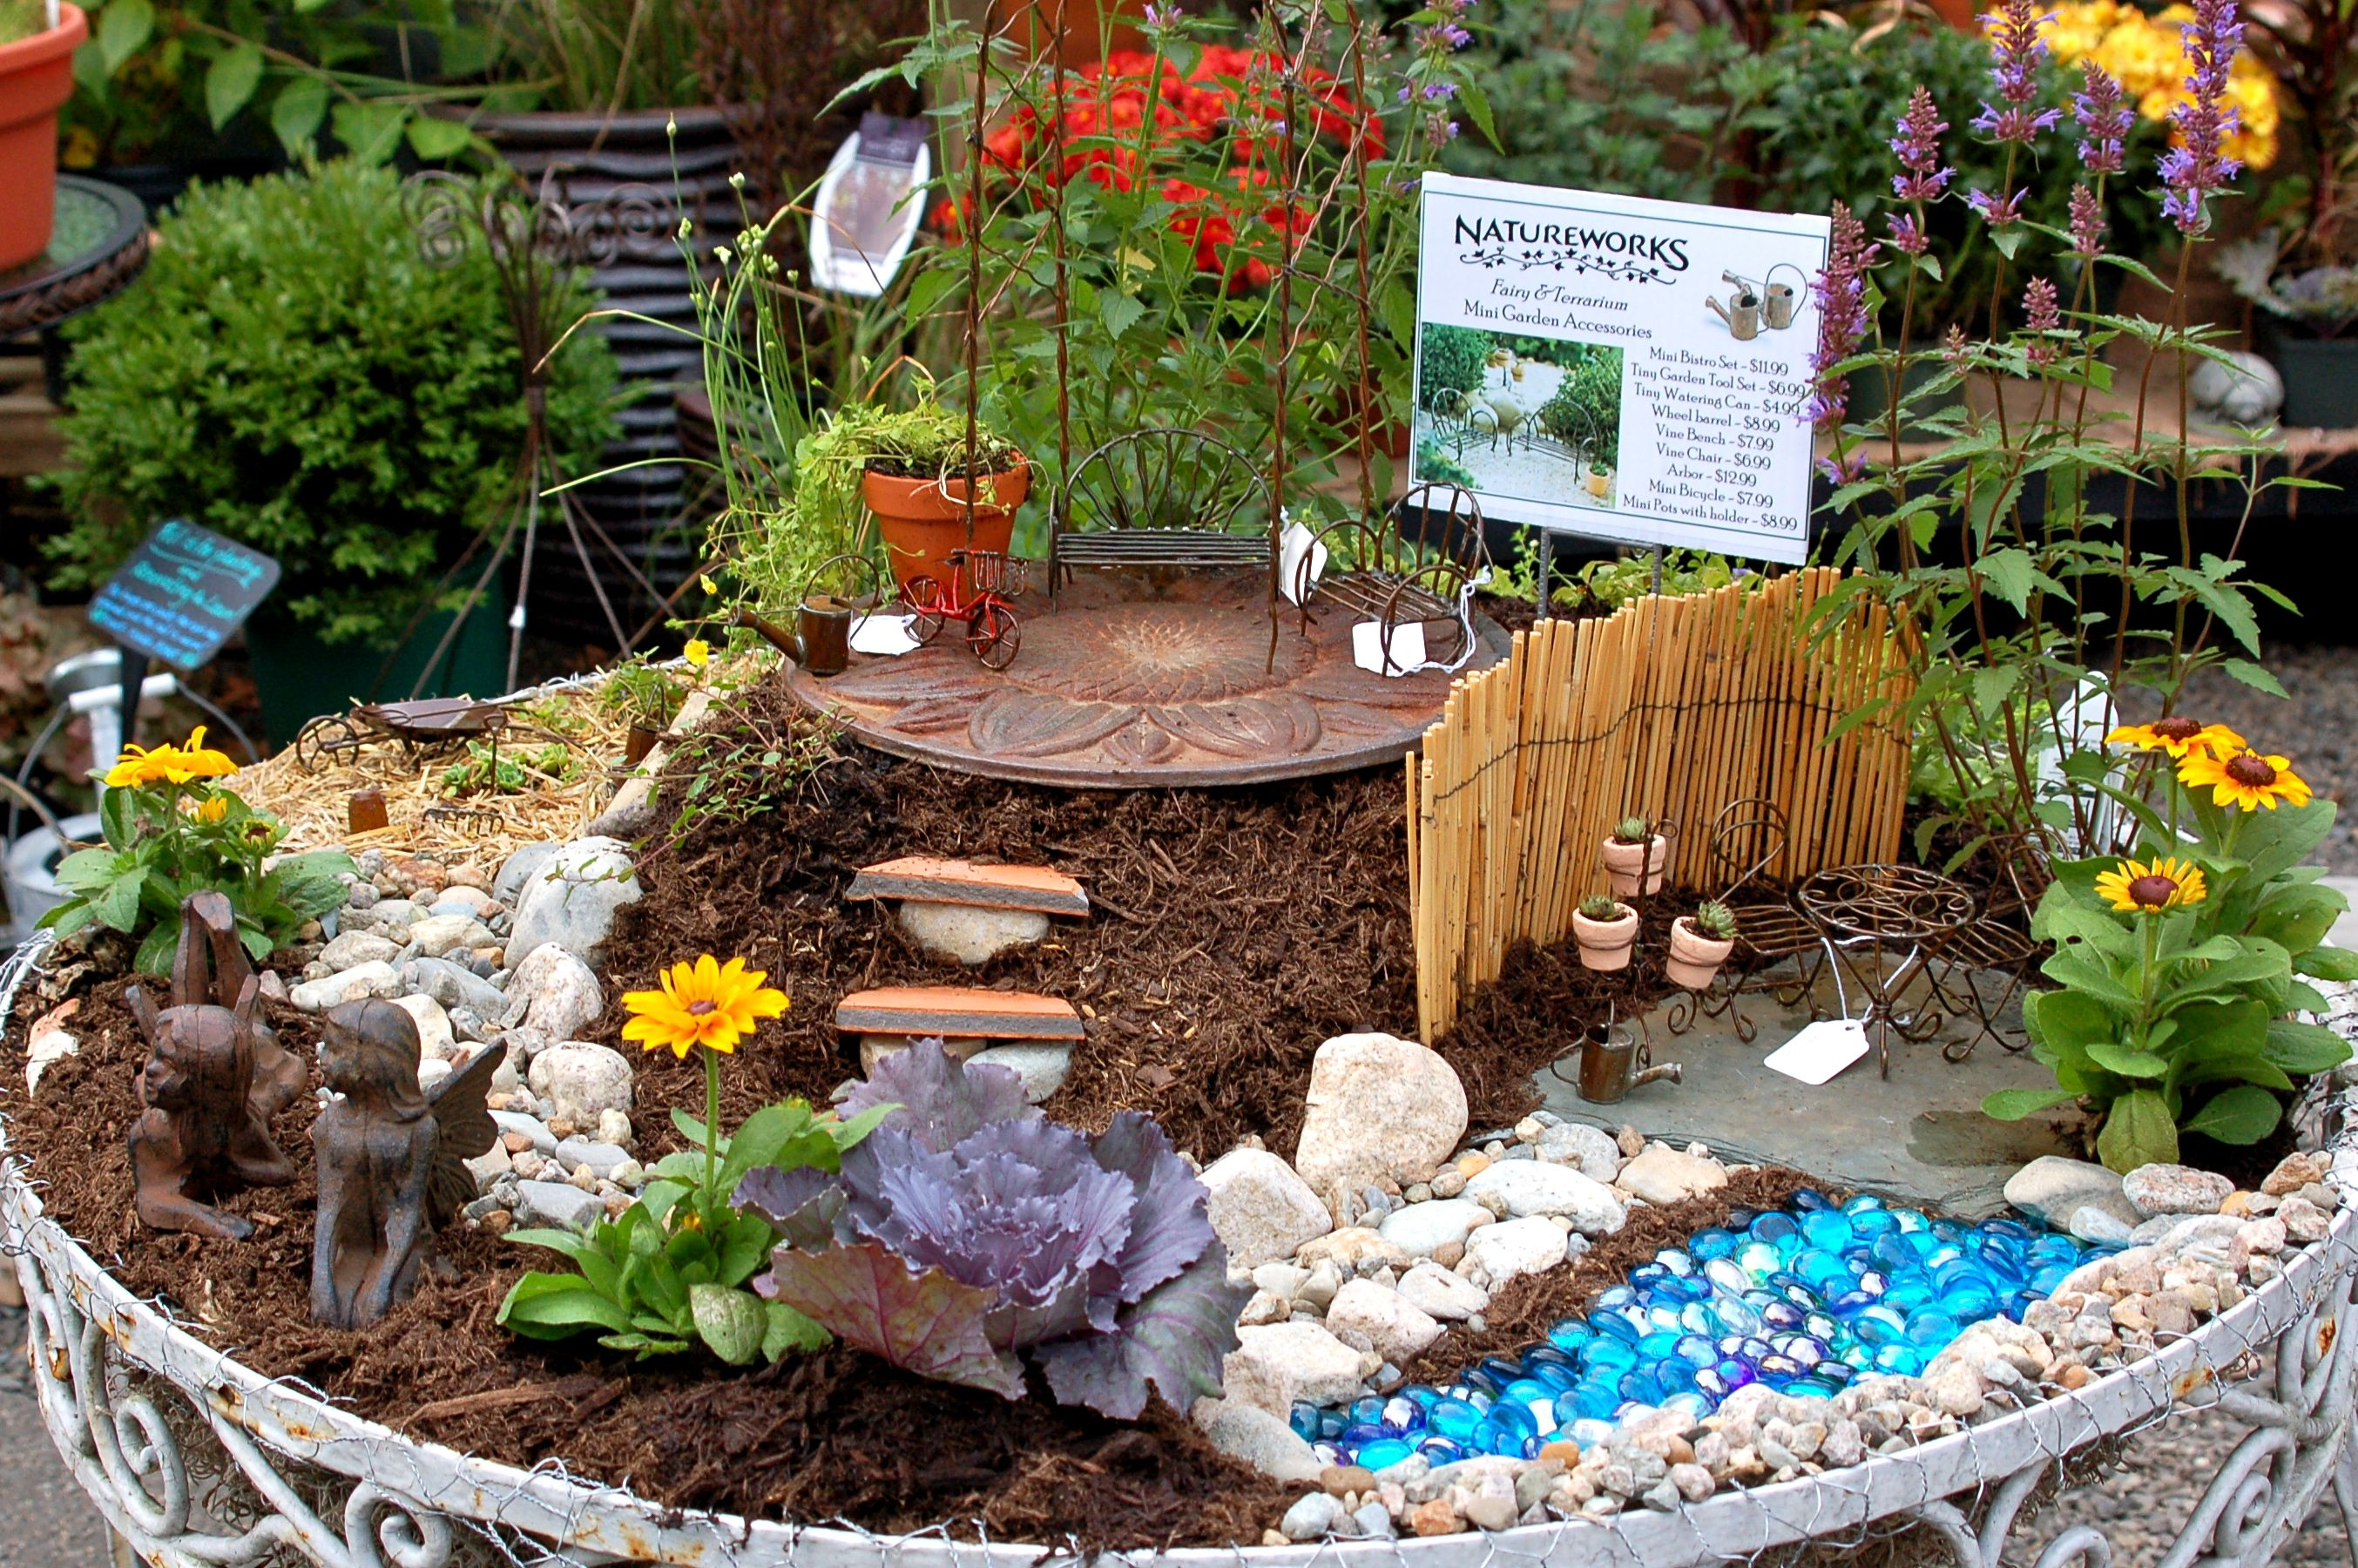 Miniature Fairy Garden Ideas home decorating trends homedit 17 Best Images About Miniature Fairy Gardens On Pinterest Gardens Miniature Fairy Gardens And